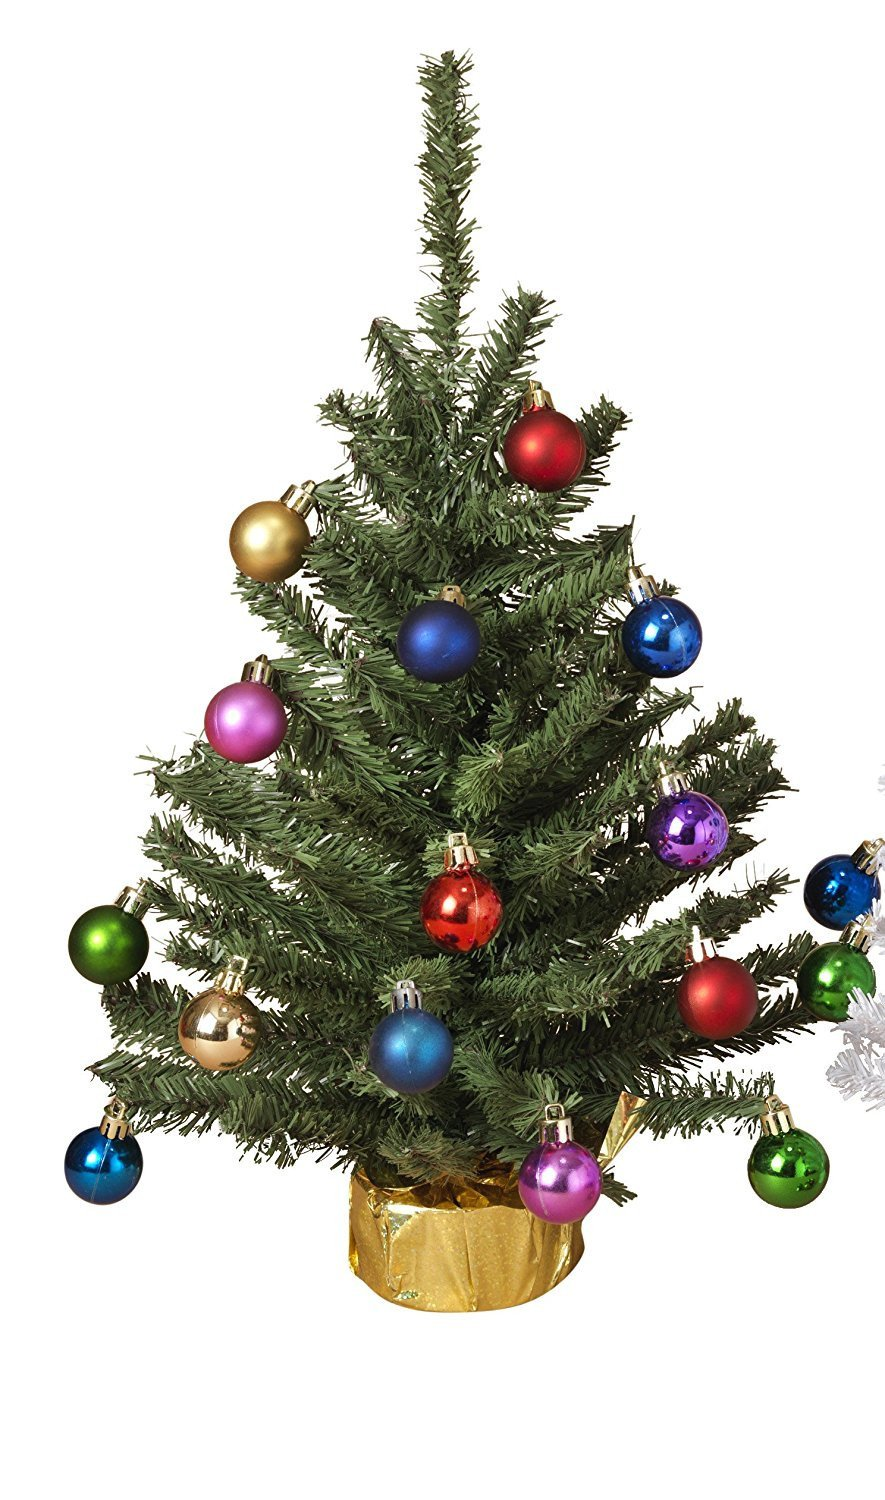 Small Tabletop Christmas Tree with Ornaments Holiday.